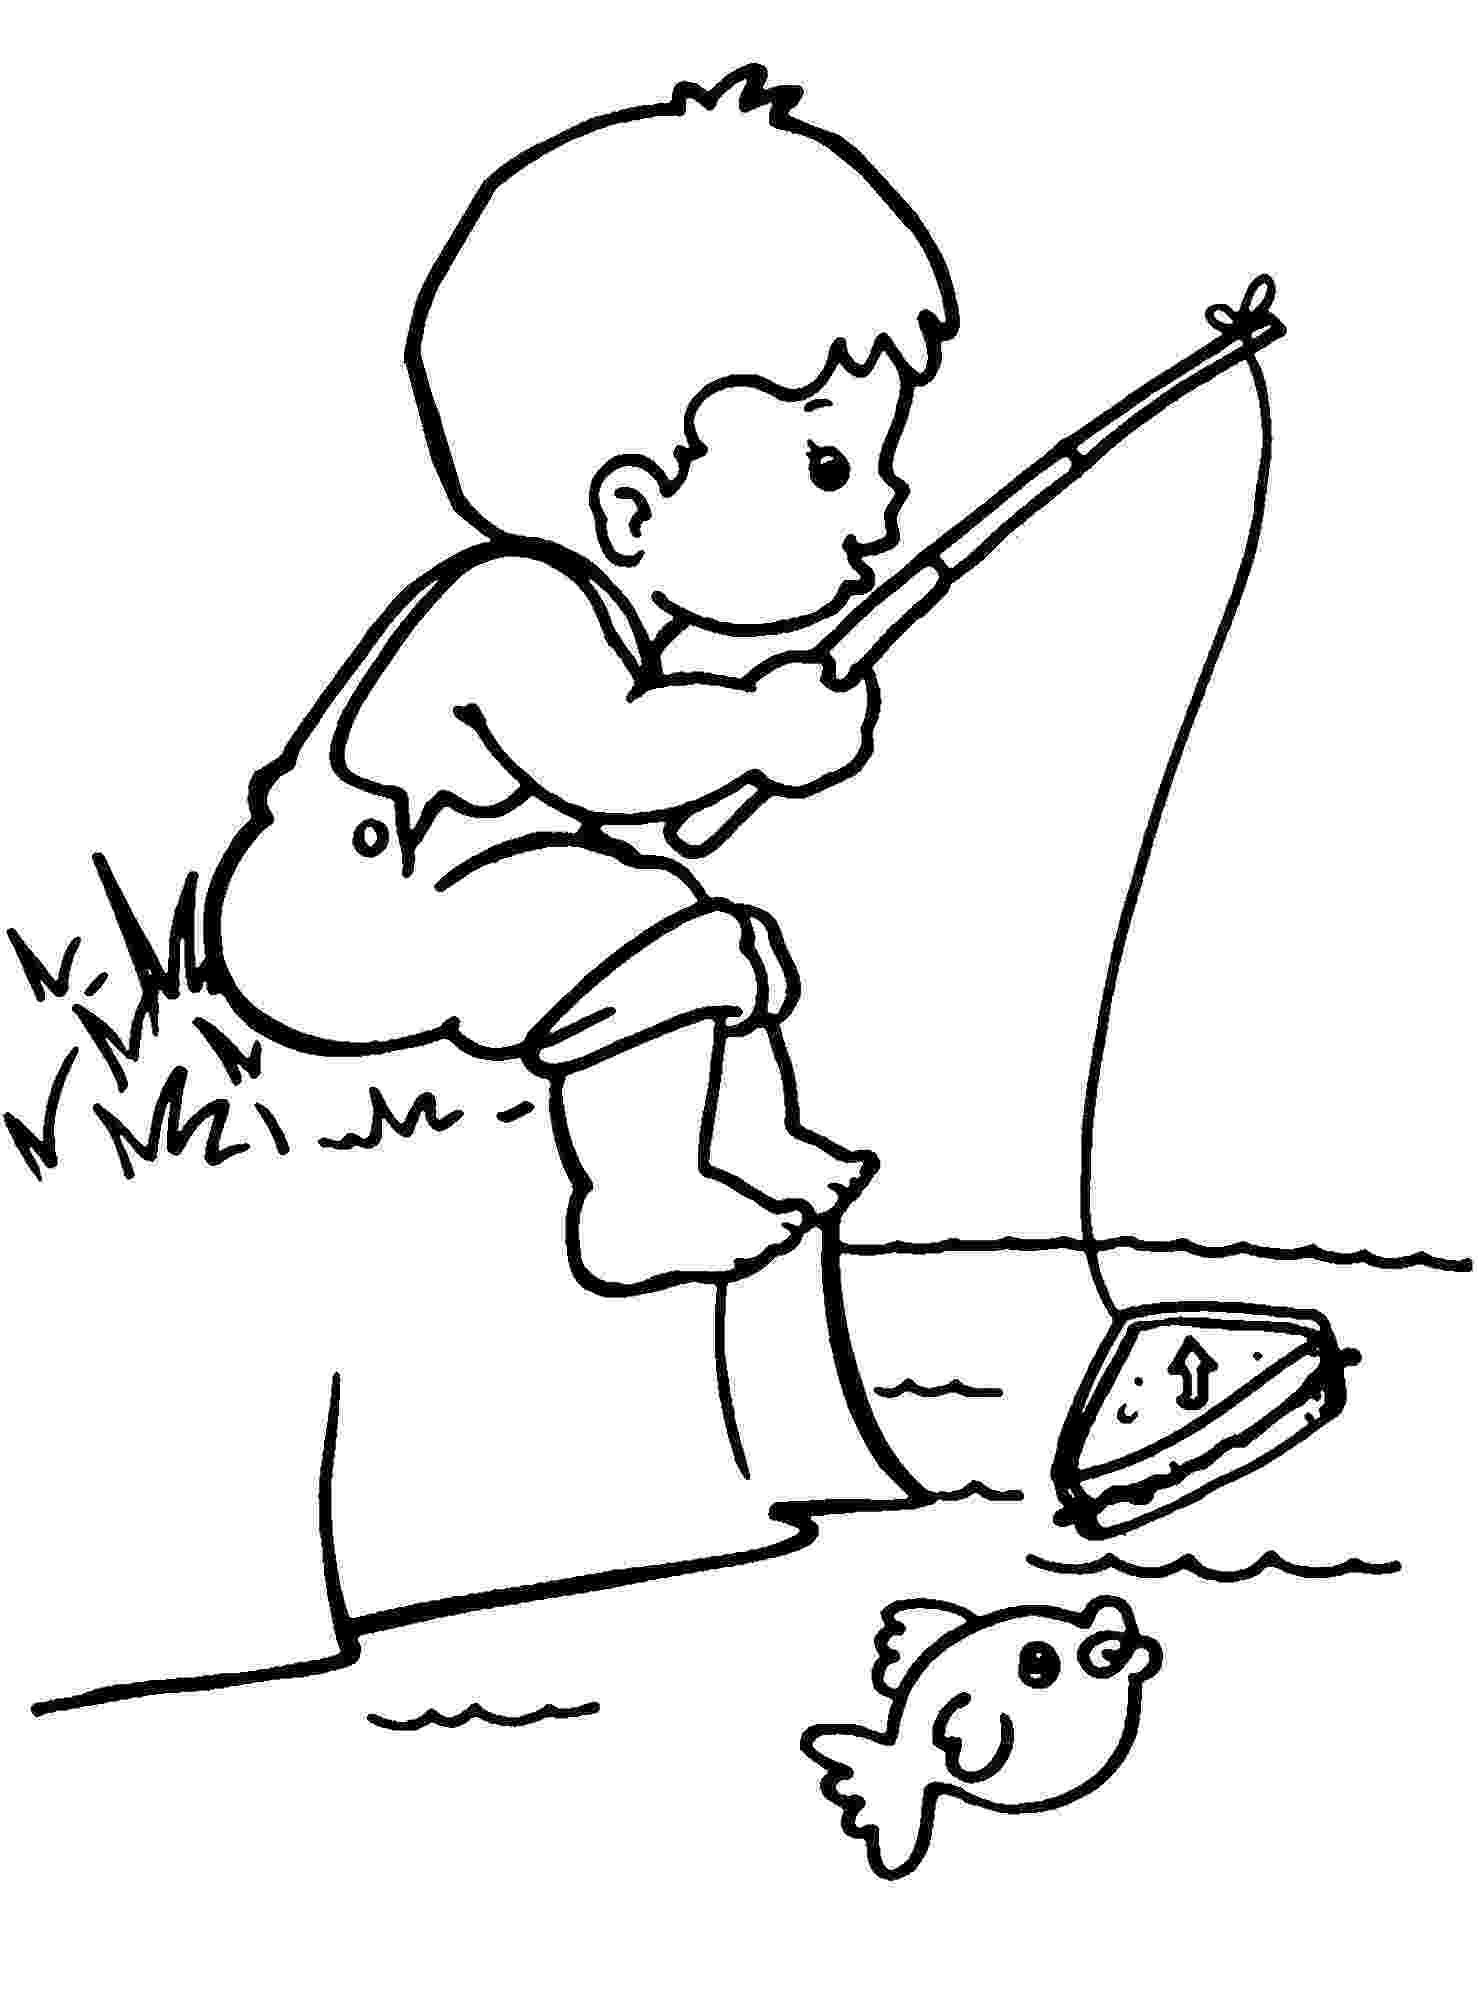 picture of a boy to color boy coloring pages wecoloringpagecom picture of boy color to a